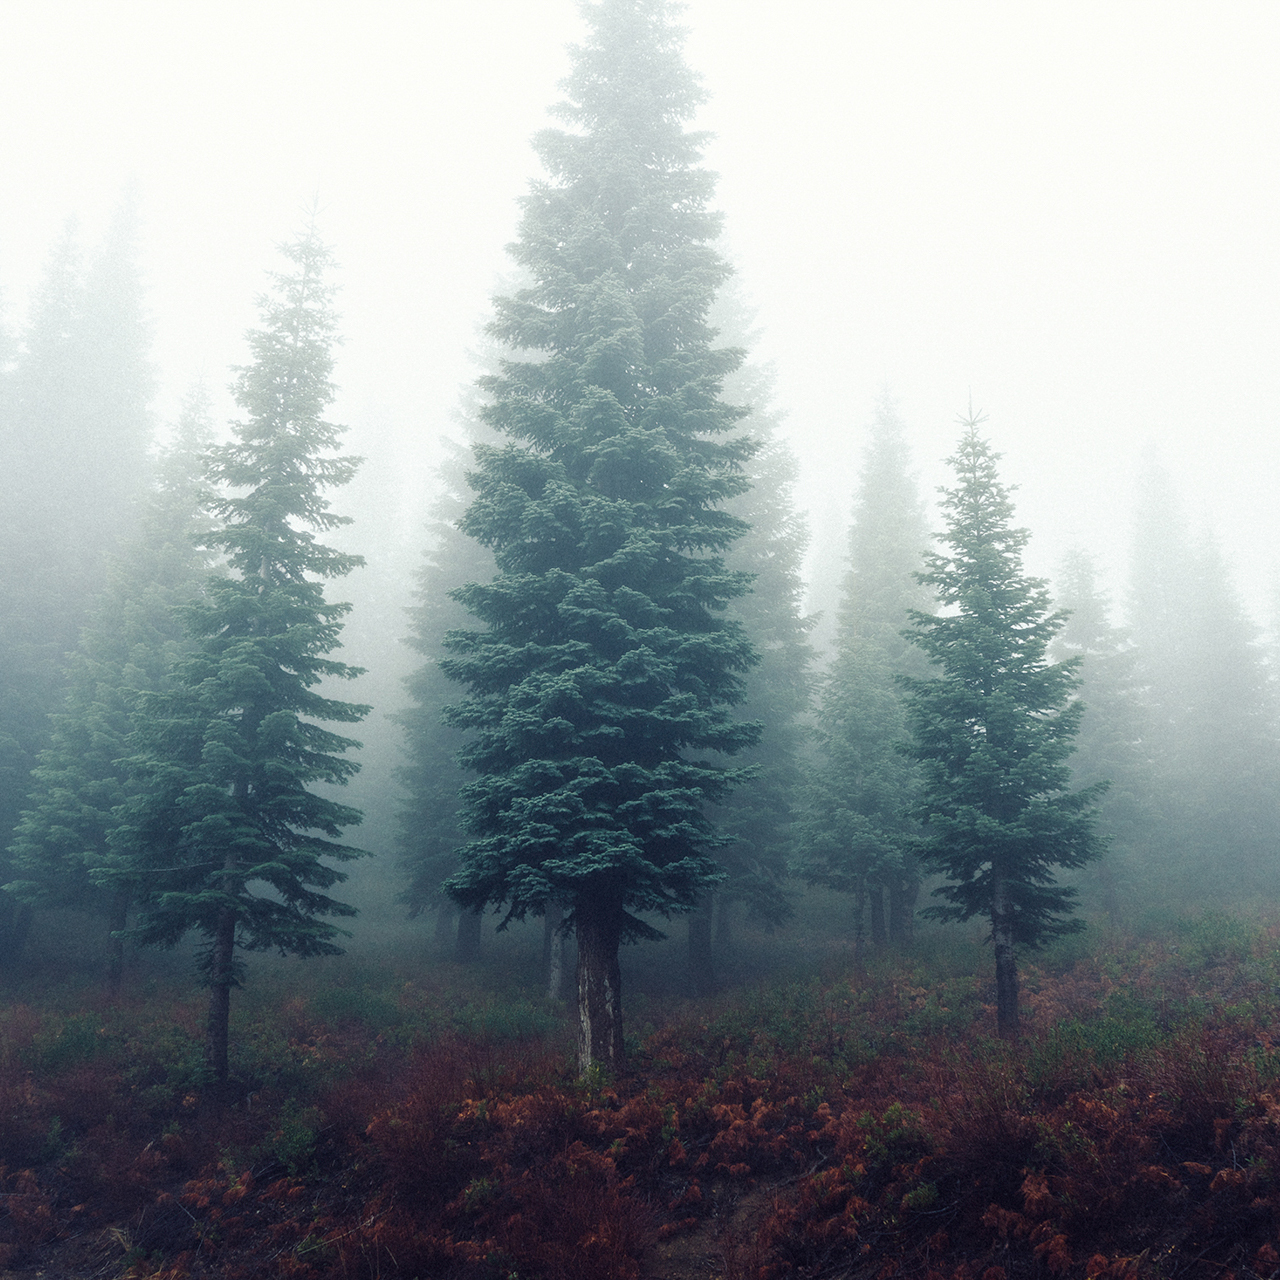 forest-trees-fog-foggy-1